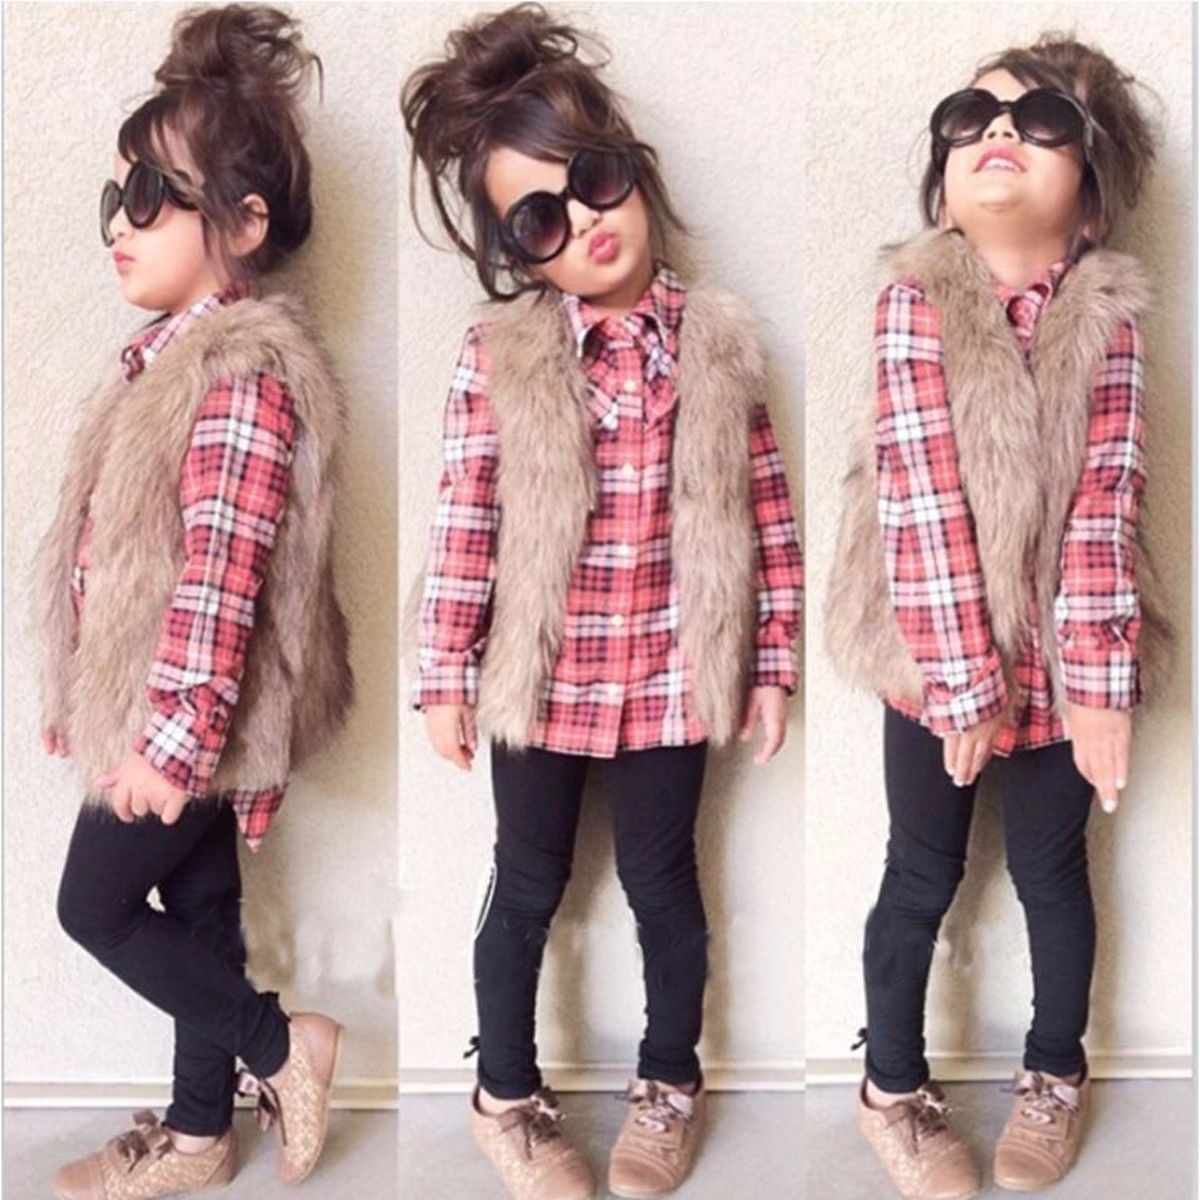 Flannel shirt for girls  Toddler Kids Baby Girls Outfits Clothes Long Sleeve Plaid Shirt